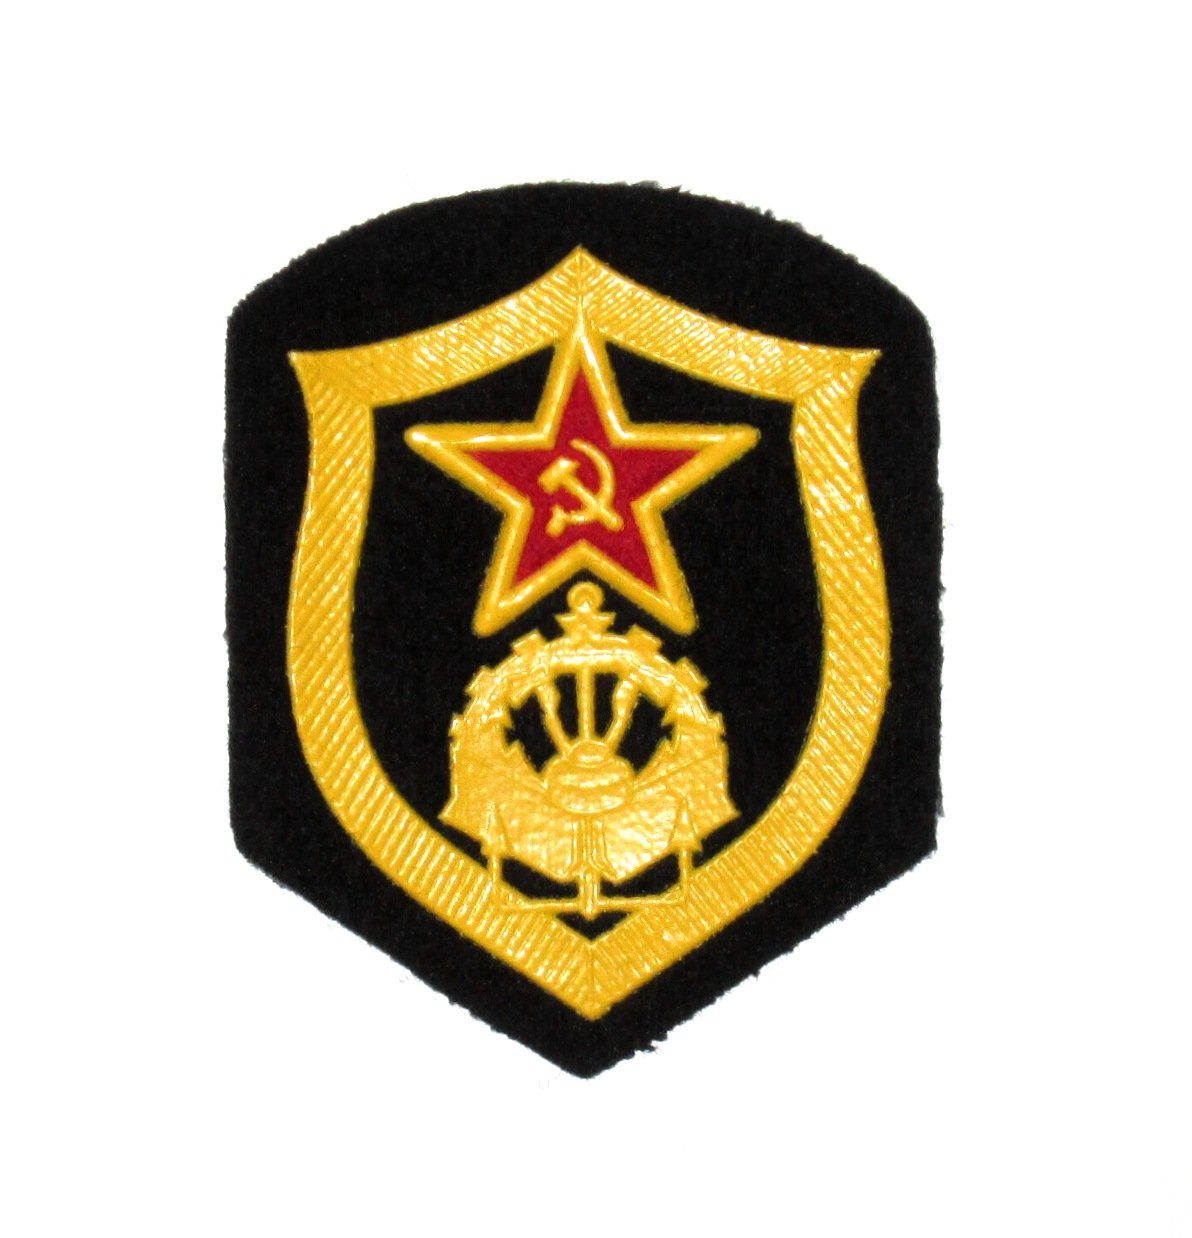 100% Original Patch Army Soviet Union Communist Russia - USSR - - Military Engineering